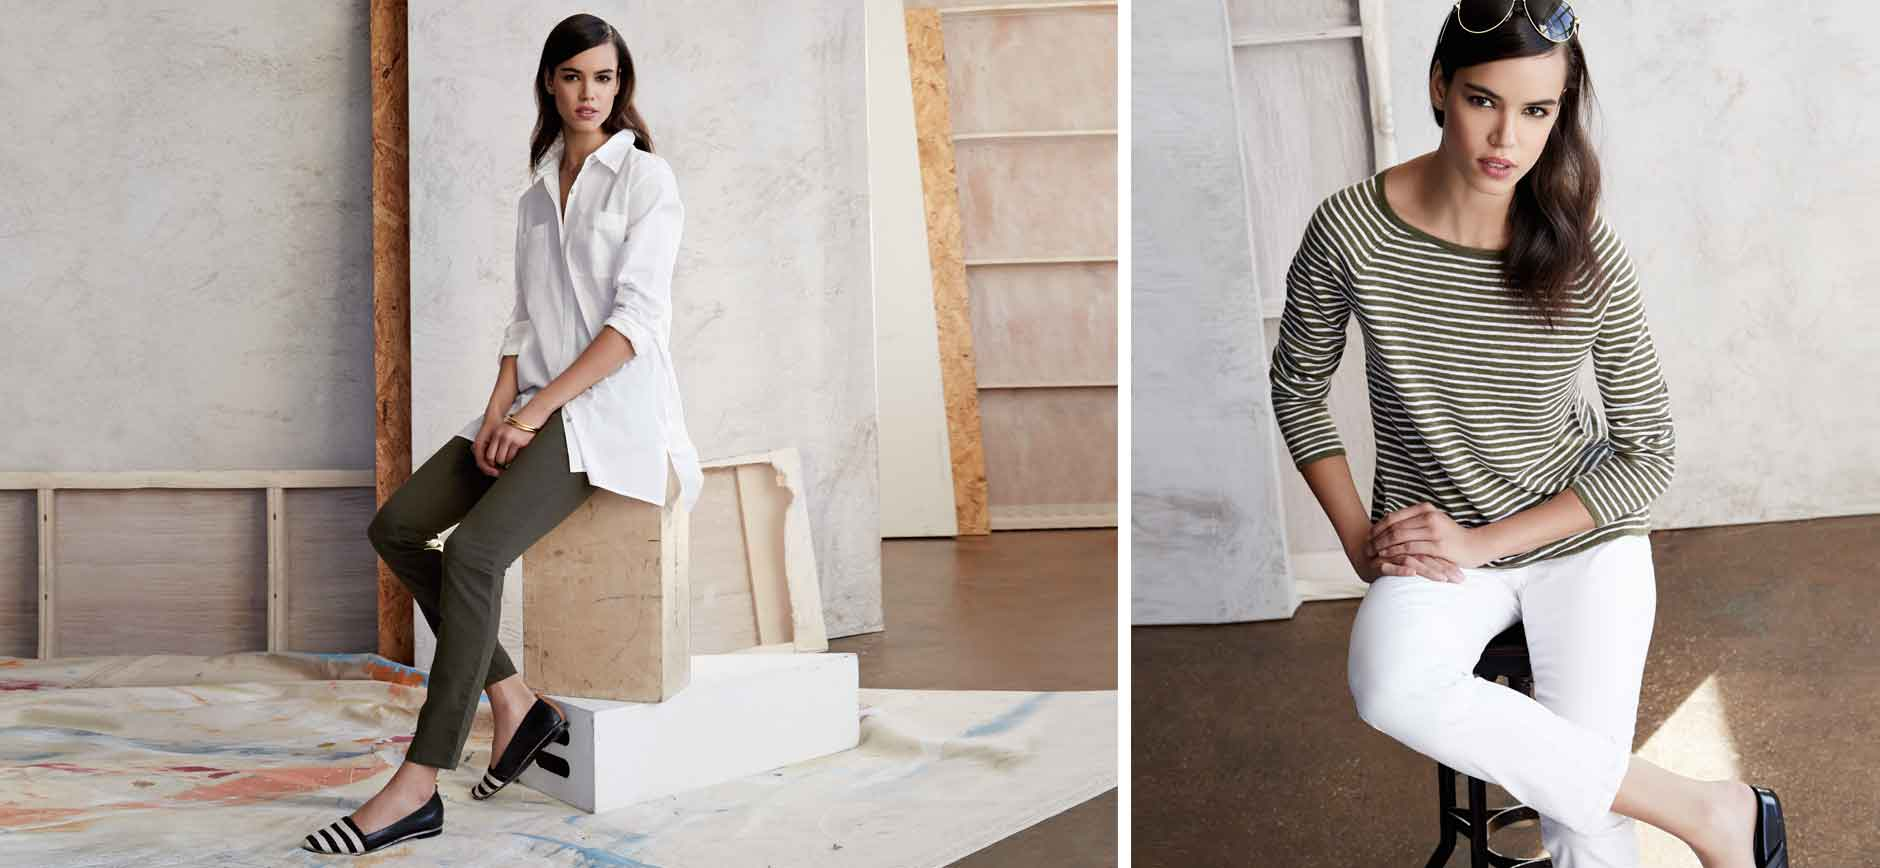 Eileen Fisher Denim Stripes Lookbook